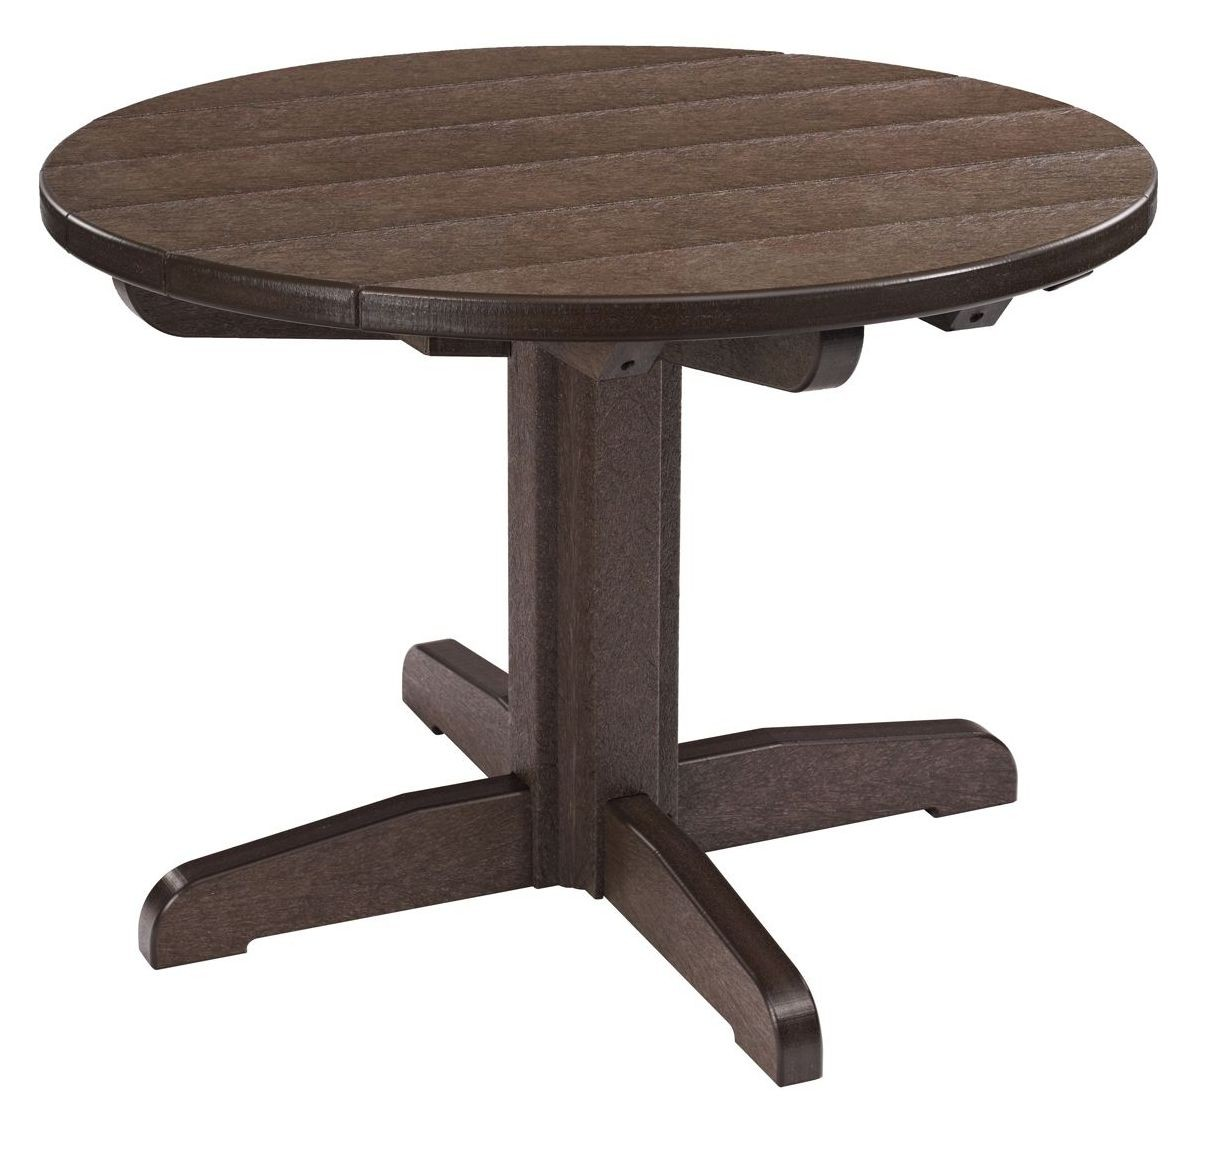 Generations Chocolate 32 Round Pedestal Cocktail Table Tbt04 16